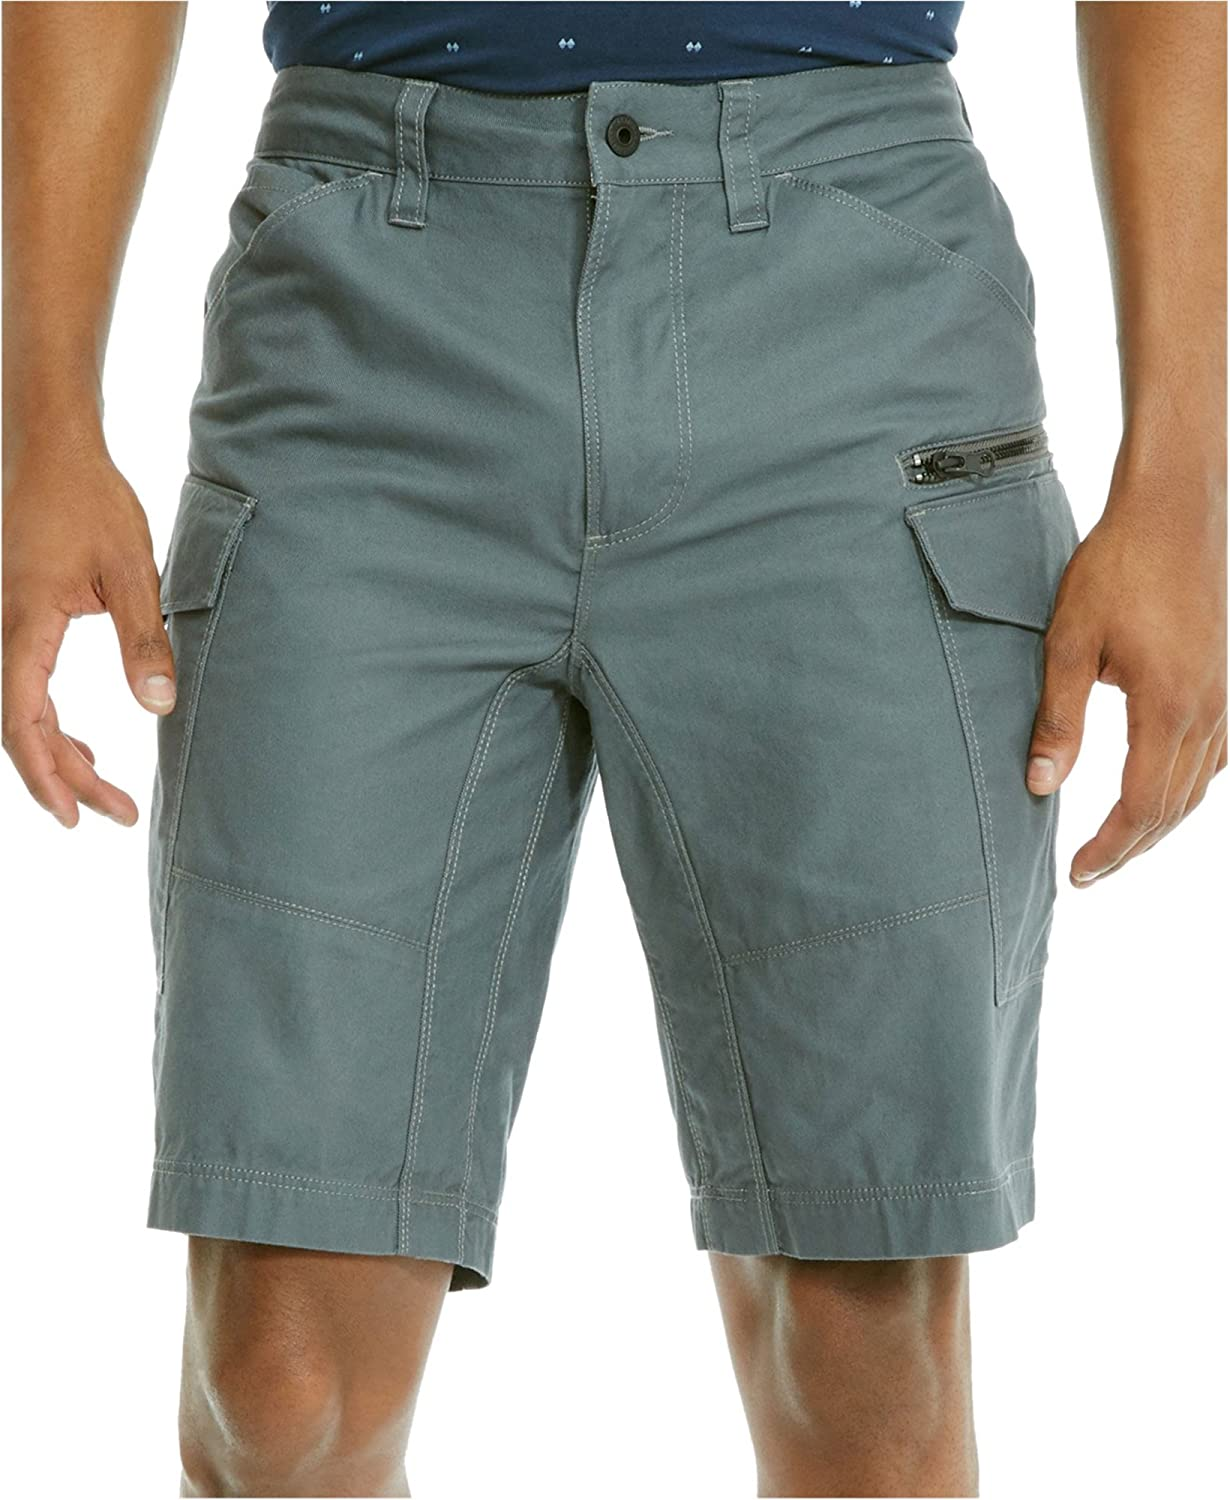 Kenneth Cole REACTION Mens Slanted Cargo Short